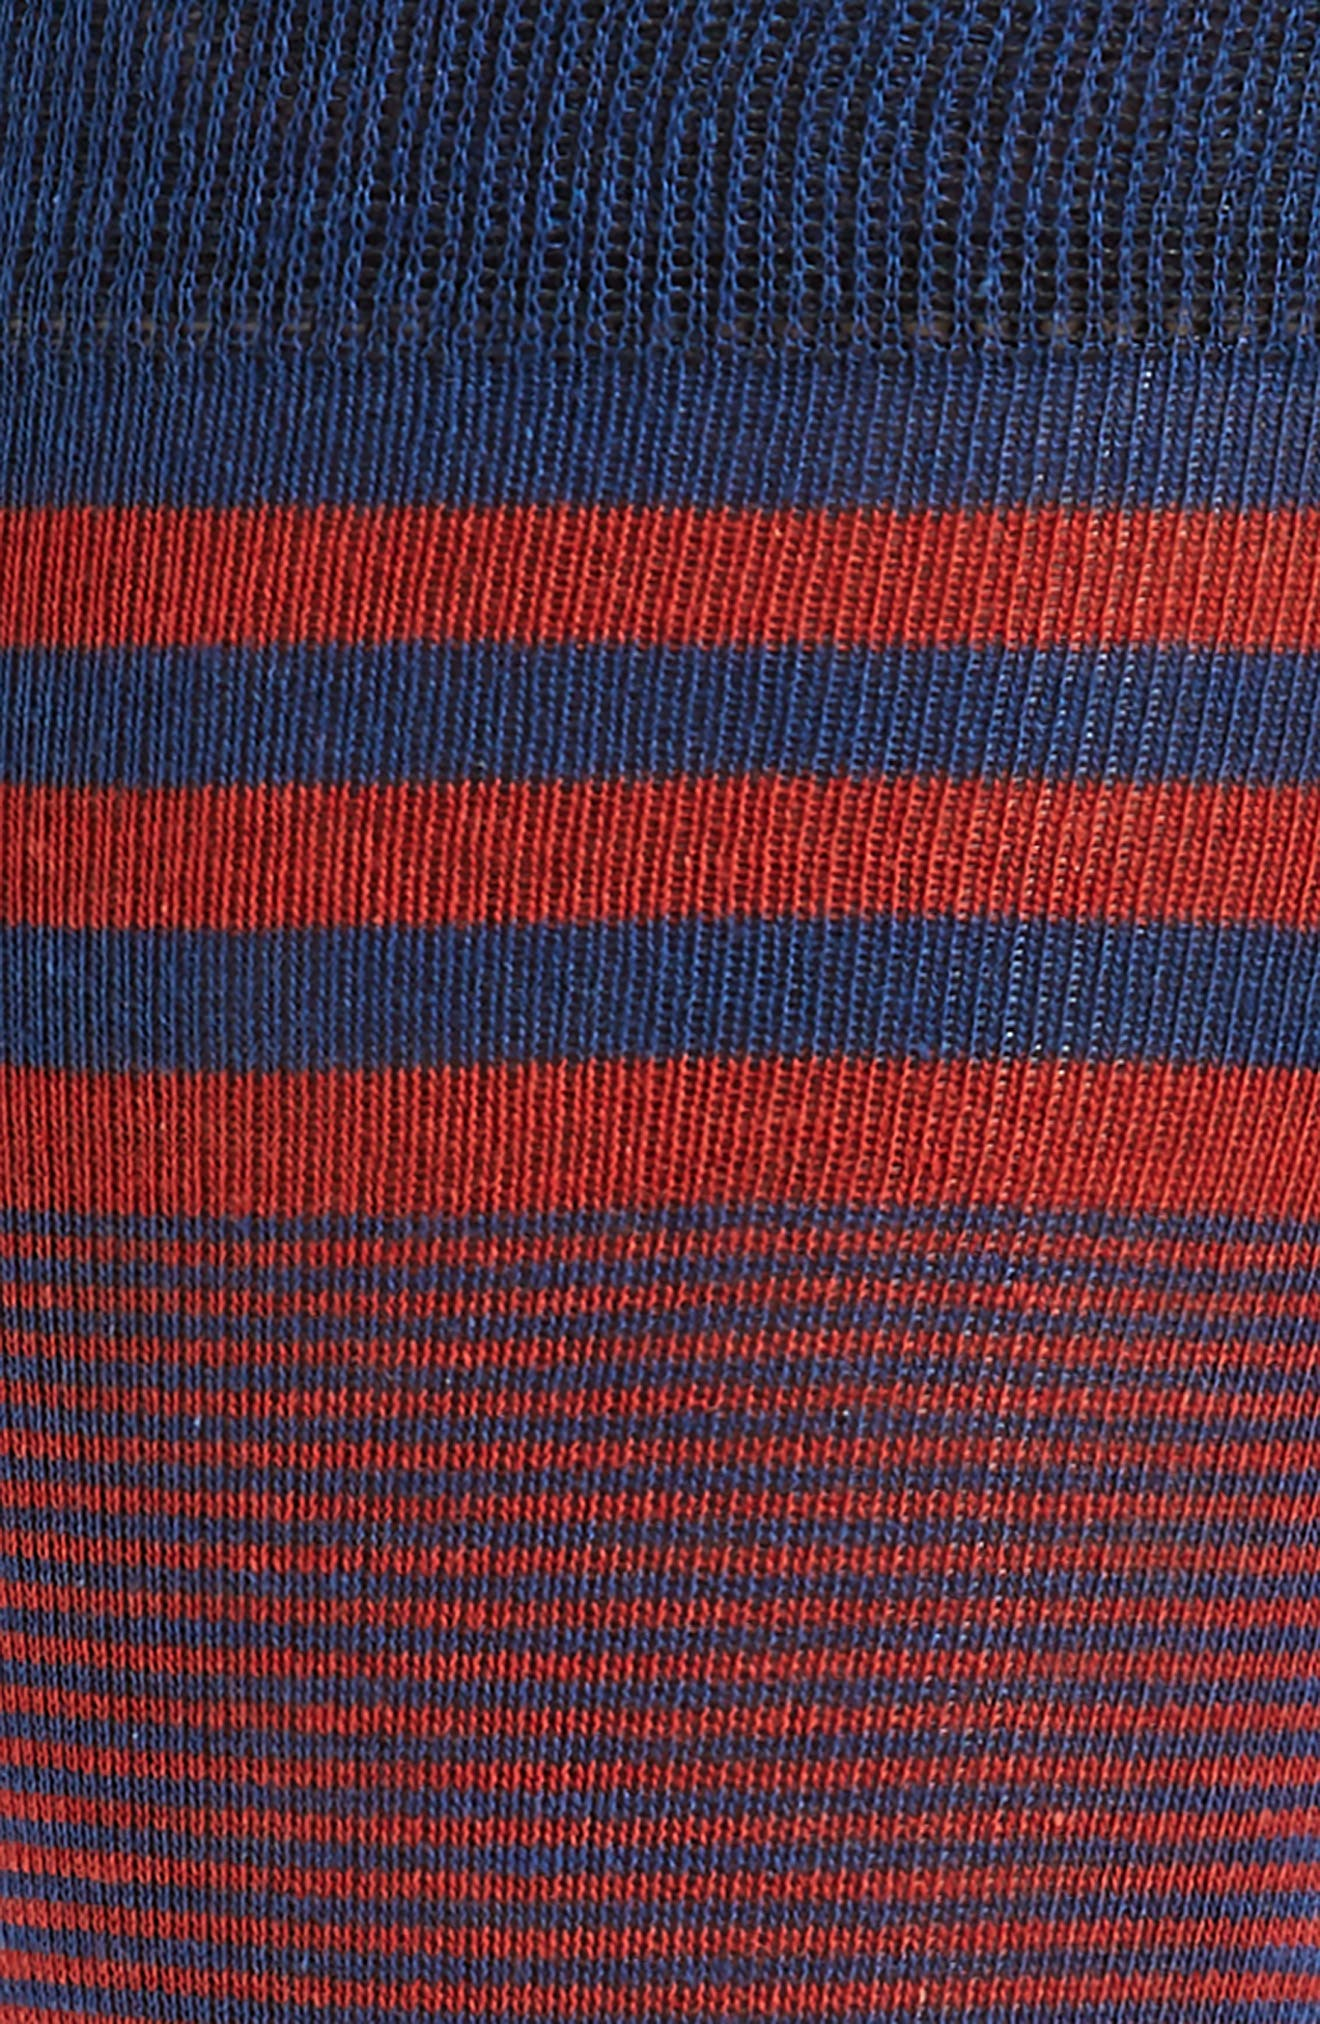 Stripe Socks,                             Alternate thumbnail 2, color,                             Marine Blue